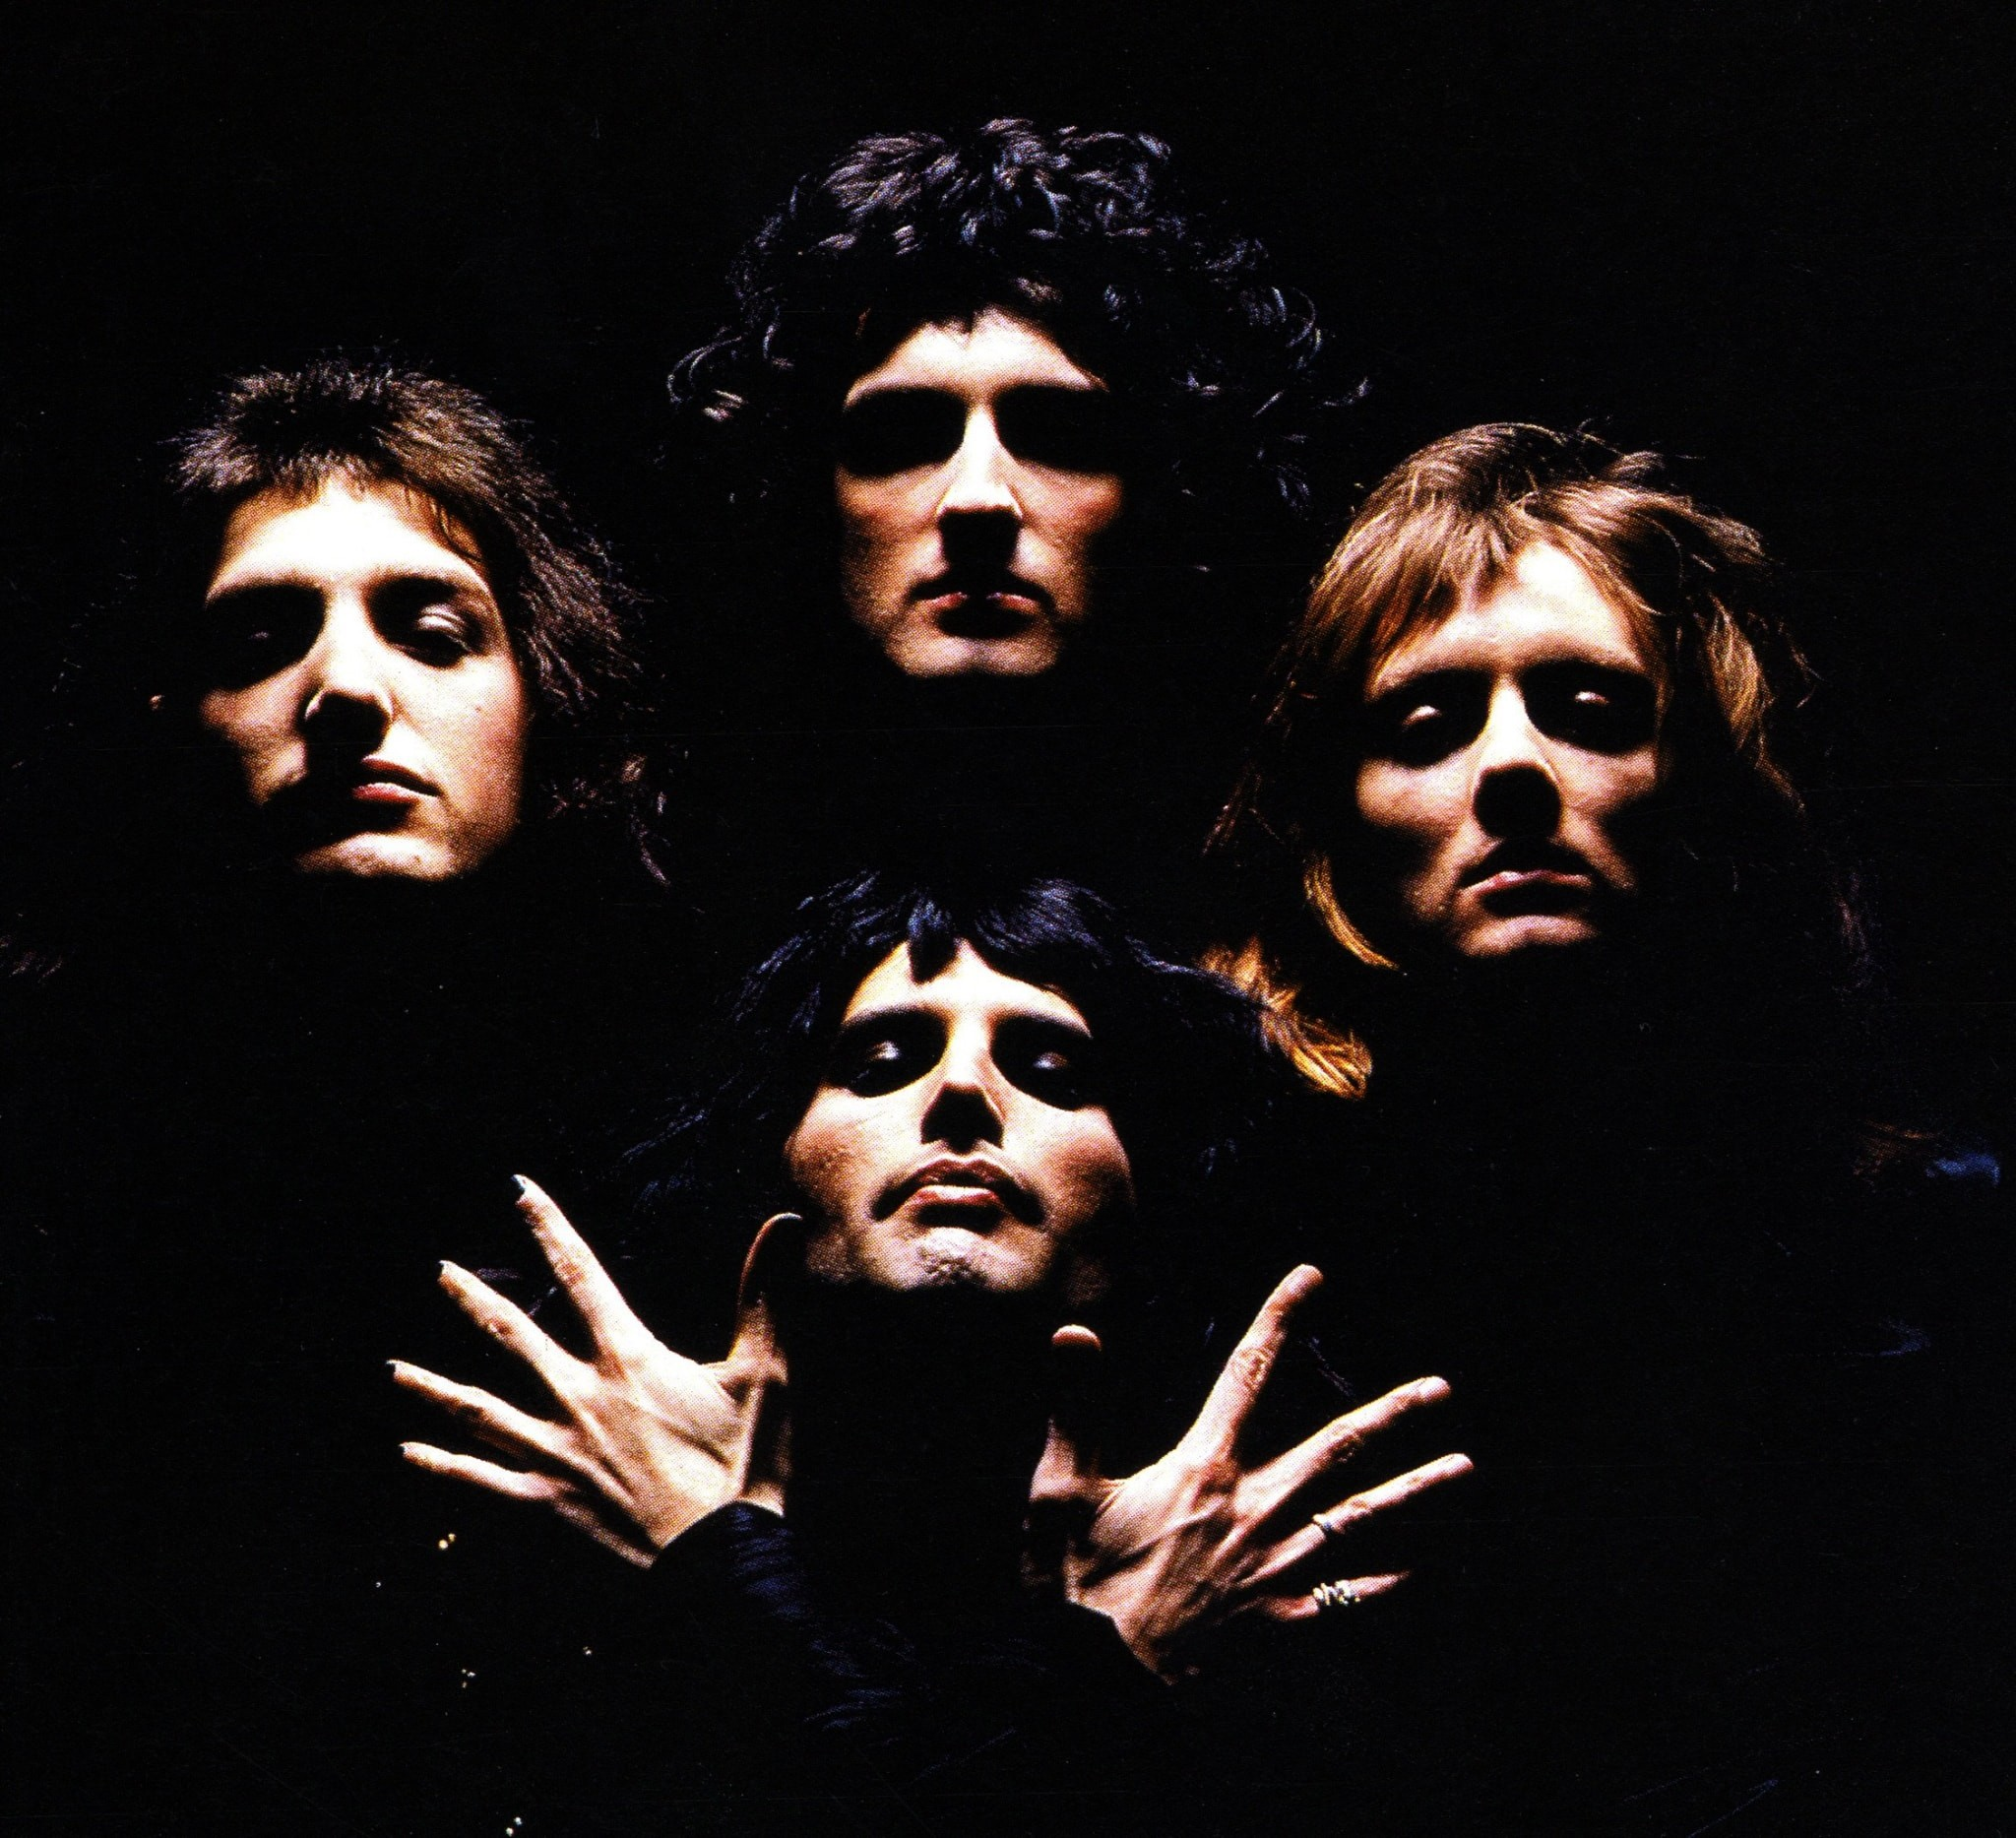 queen band wallpaper desktop ·①